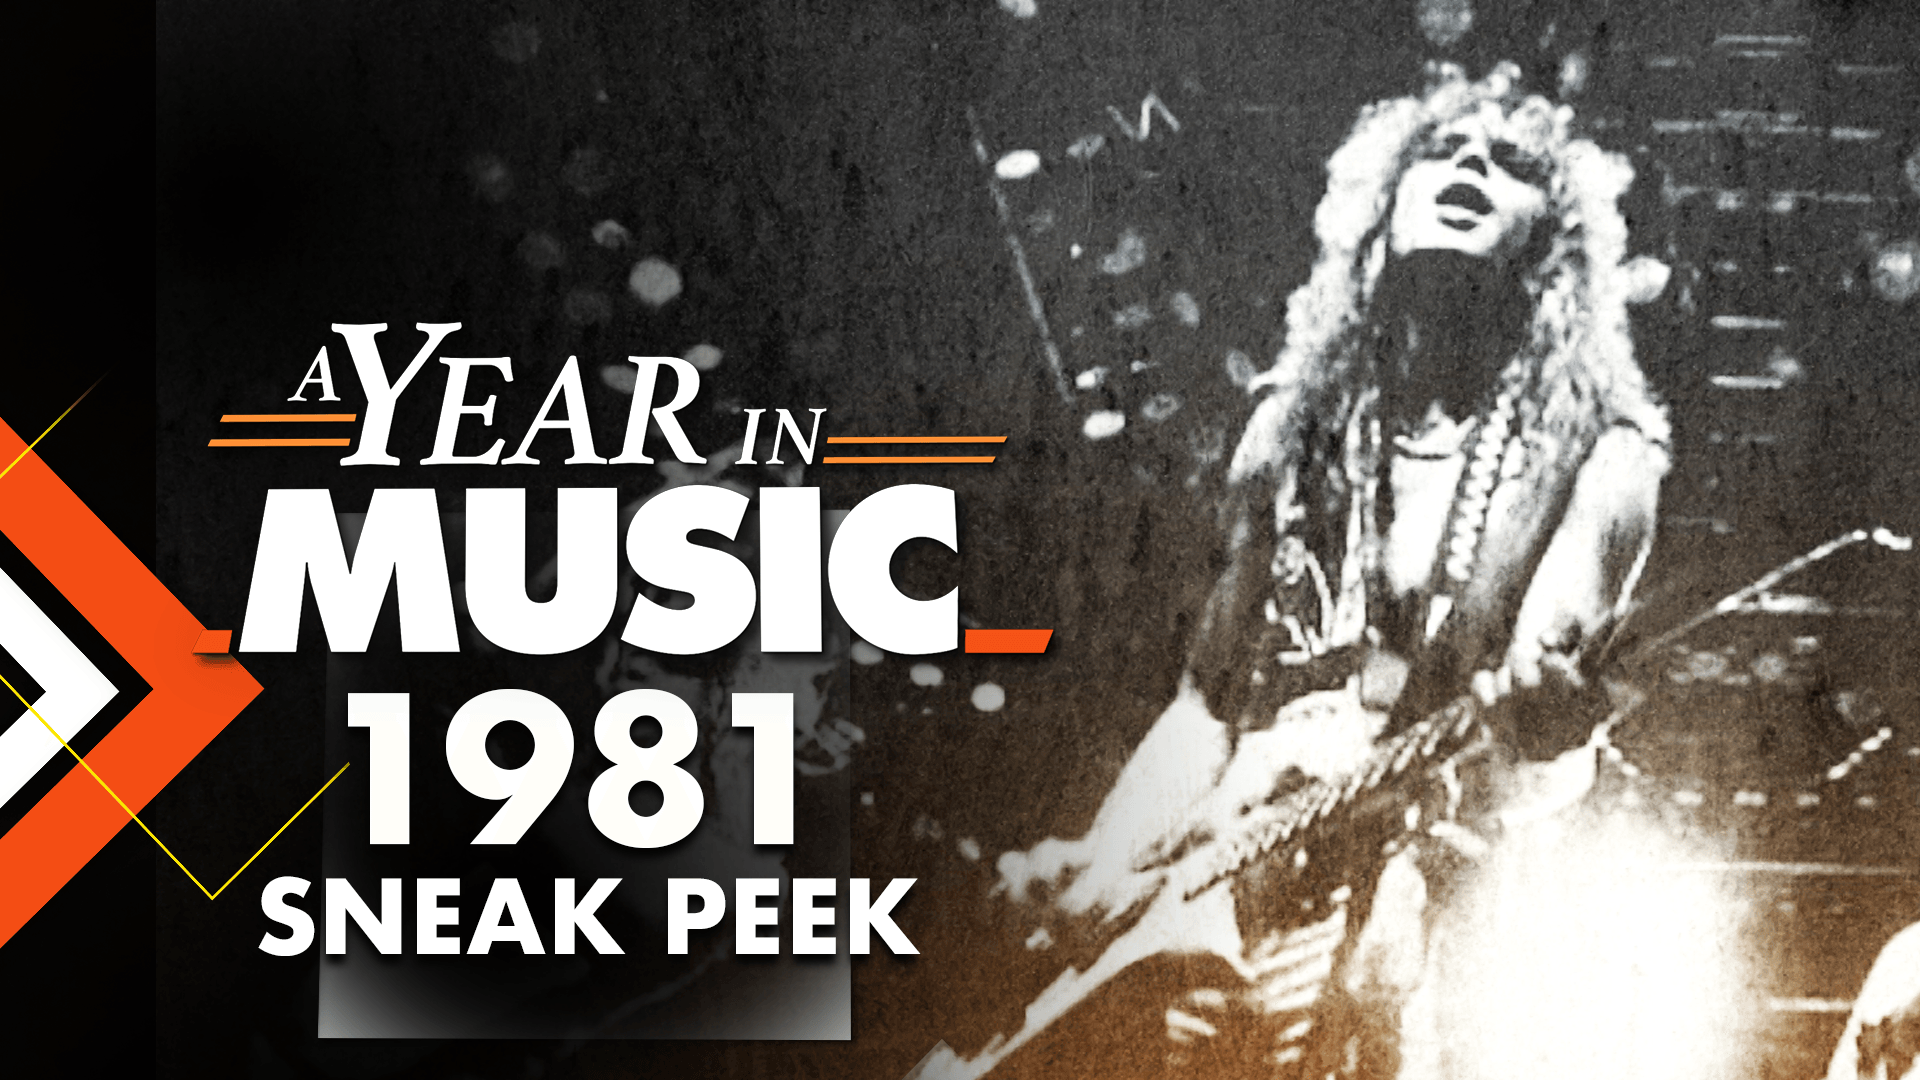 A Year in Music: 1981 Sneak Peek